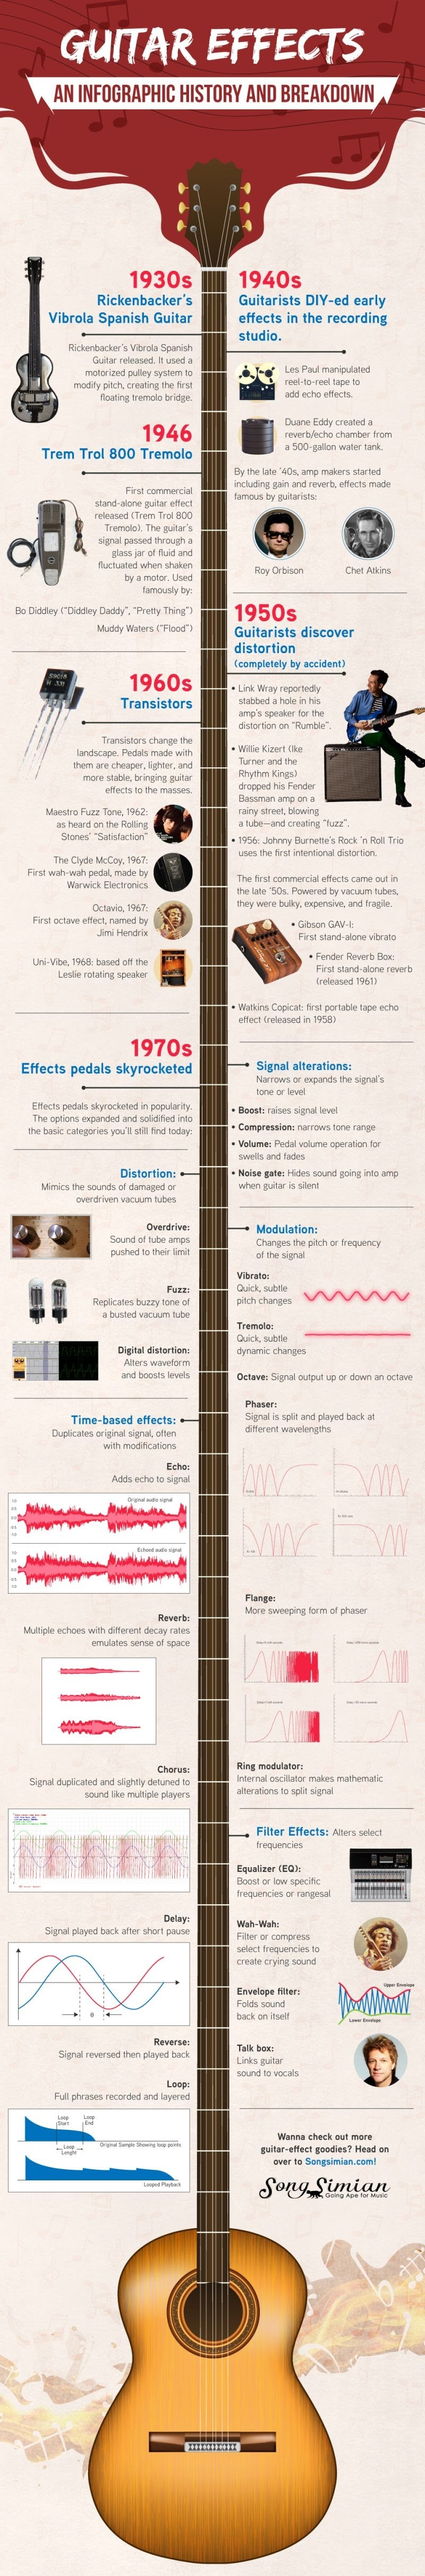 Guitar Effects: An Infographic History and Breakdown #infographic